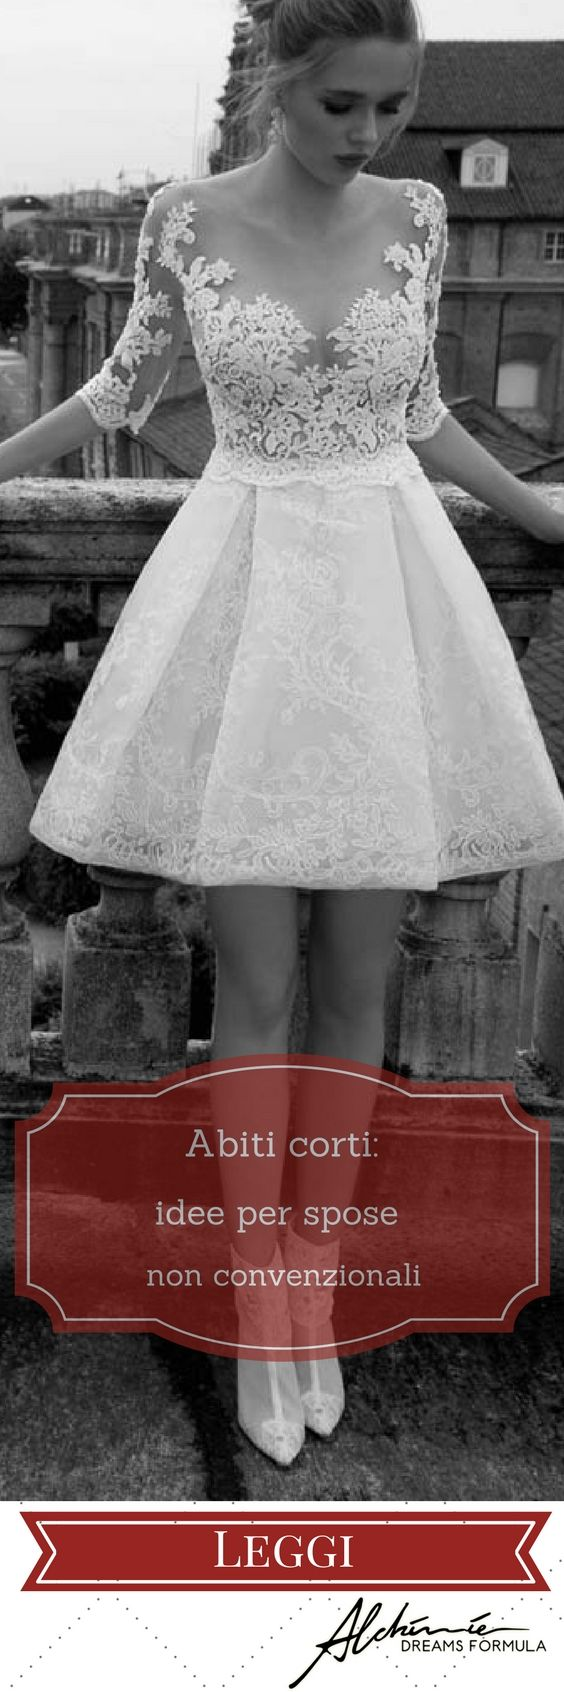 Abiti da sposa corti: idee per spose non convenzionali -  Short Wedding Dresses : ideas for unconventional brides